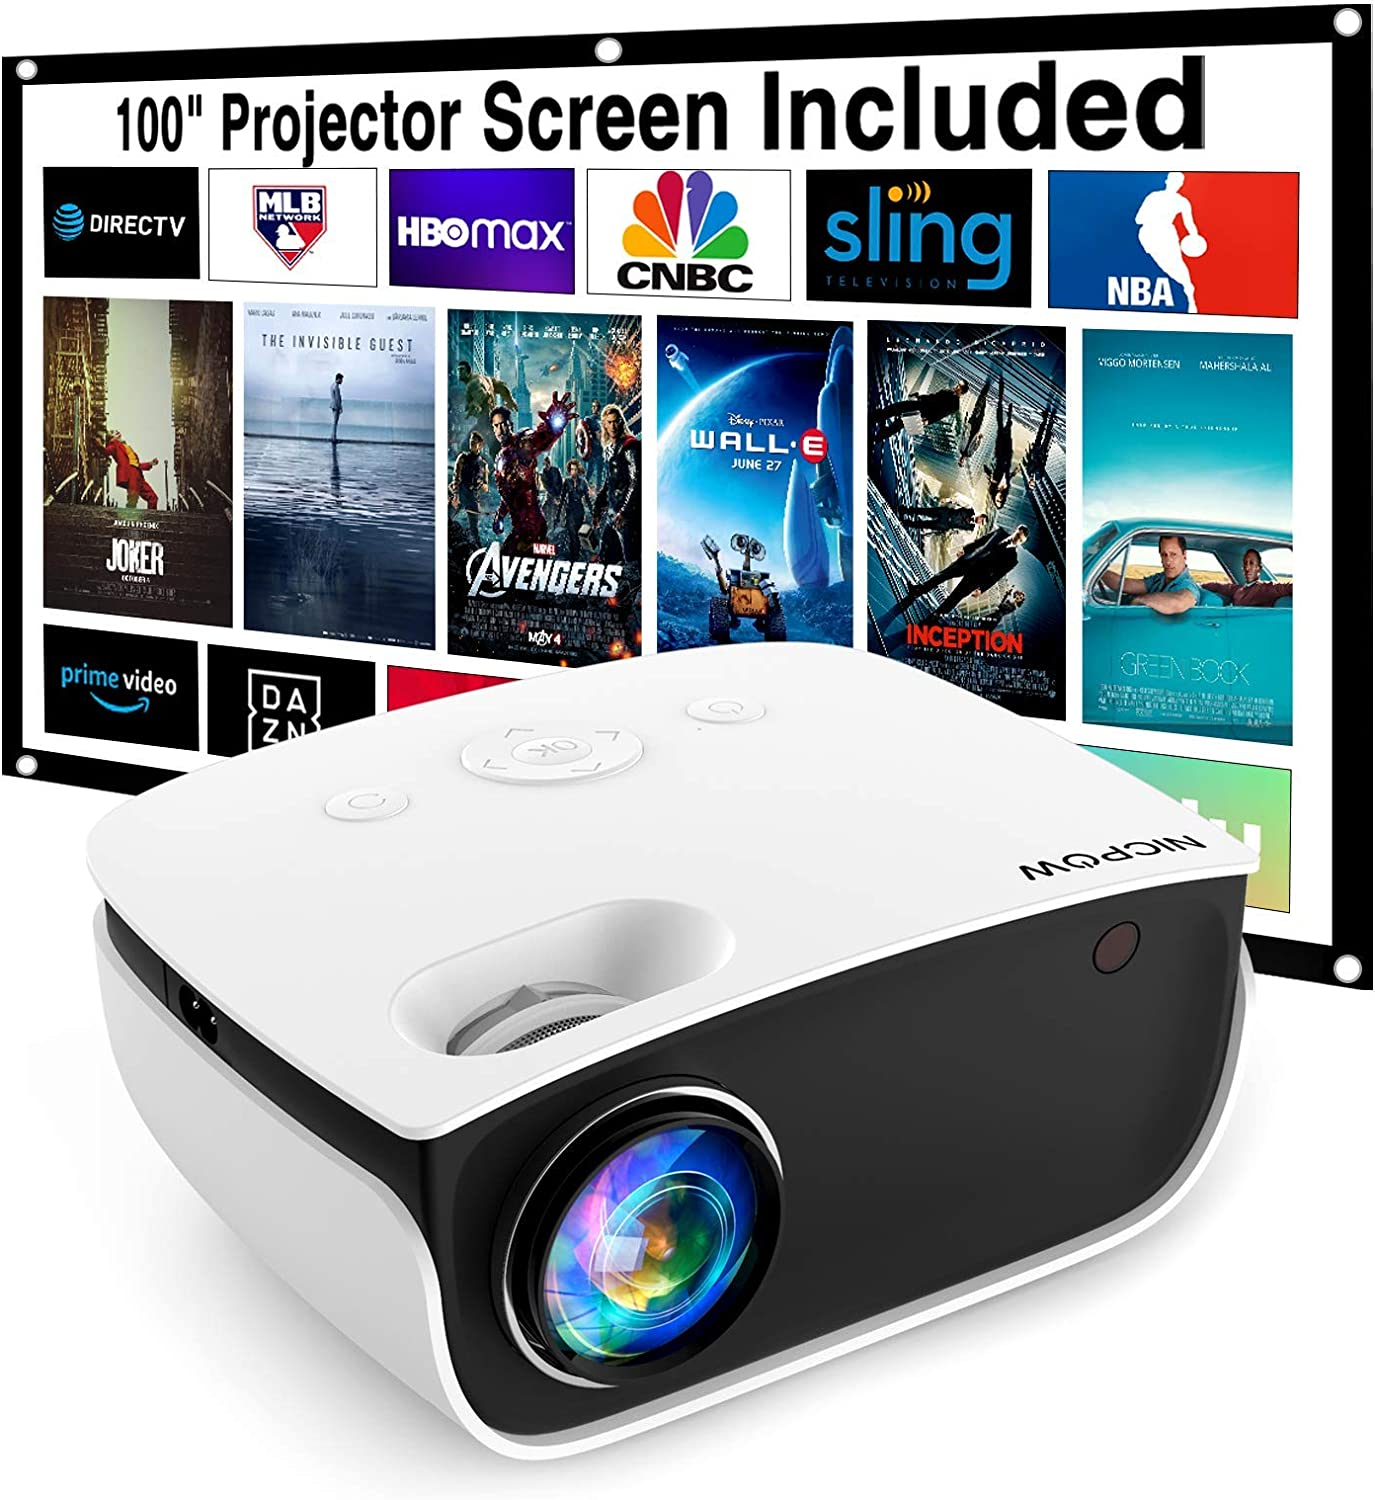 Video Projector,NICPOW 5500L Projector with 100Inch Projector Screen,1080P Supported Outdoor Movie Projector,Compatible with Fire Stick,PS4,HDMI,AV (Renewed)